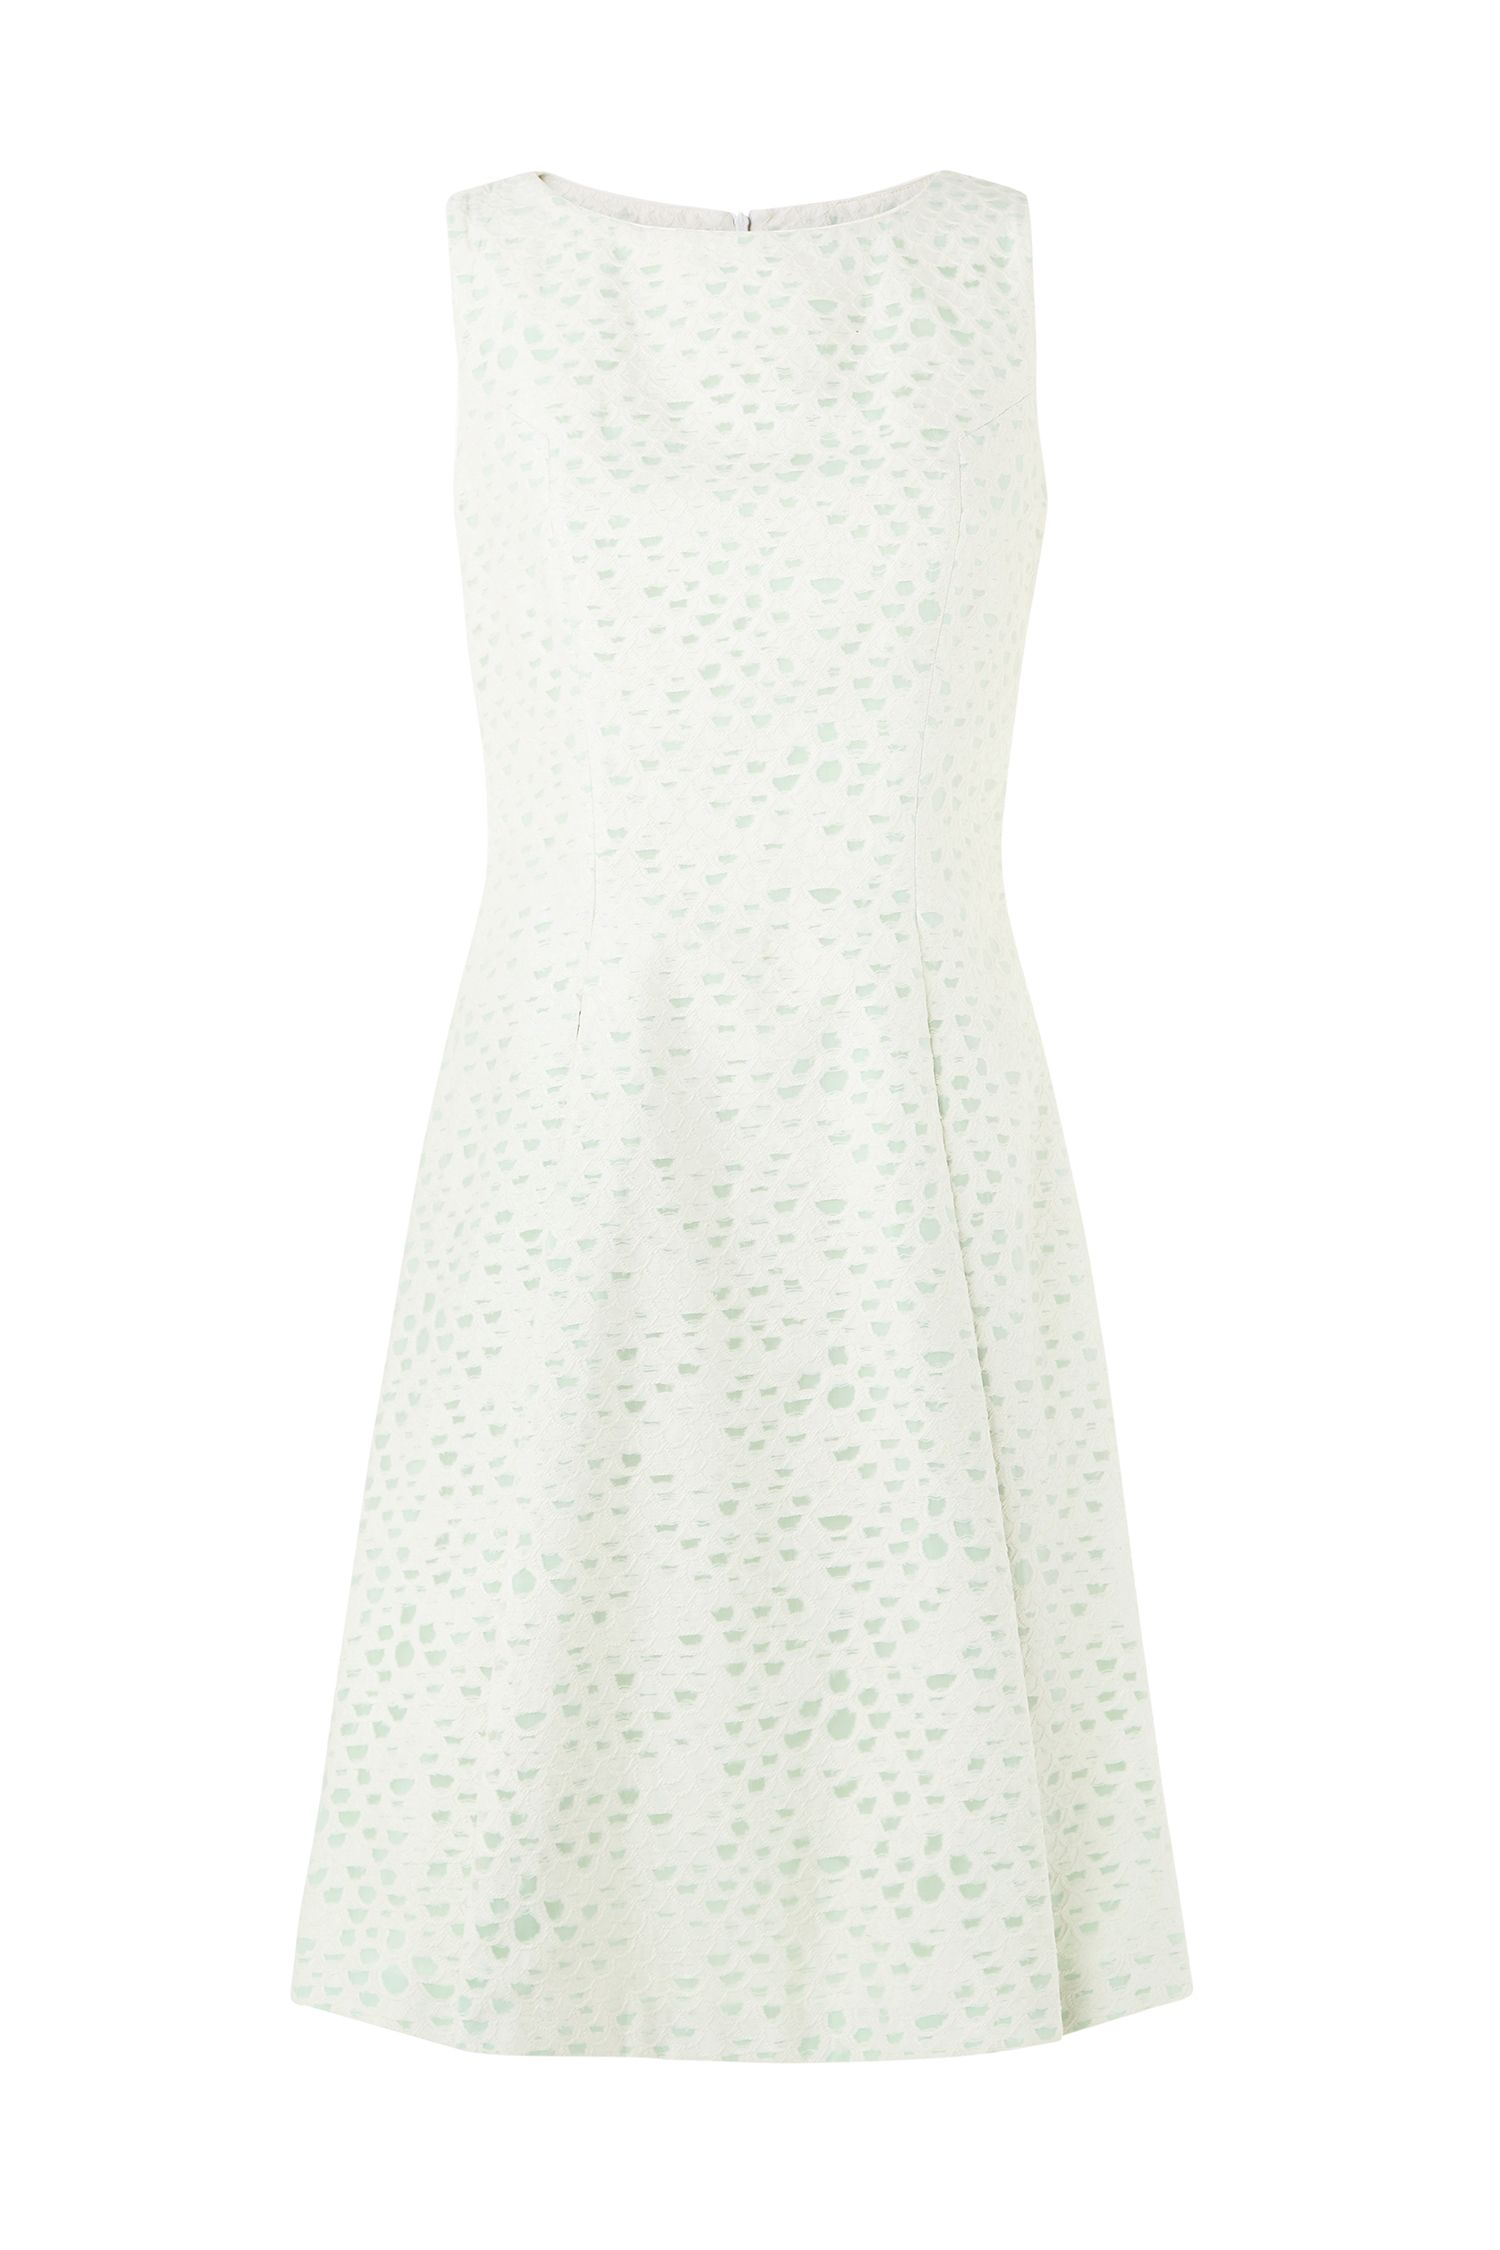 Fenn Wright Manson Azalea Dress, White